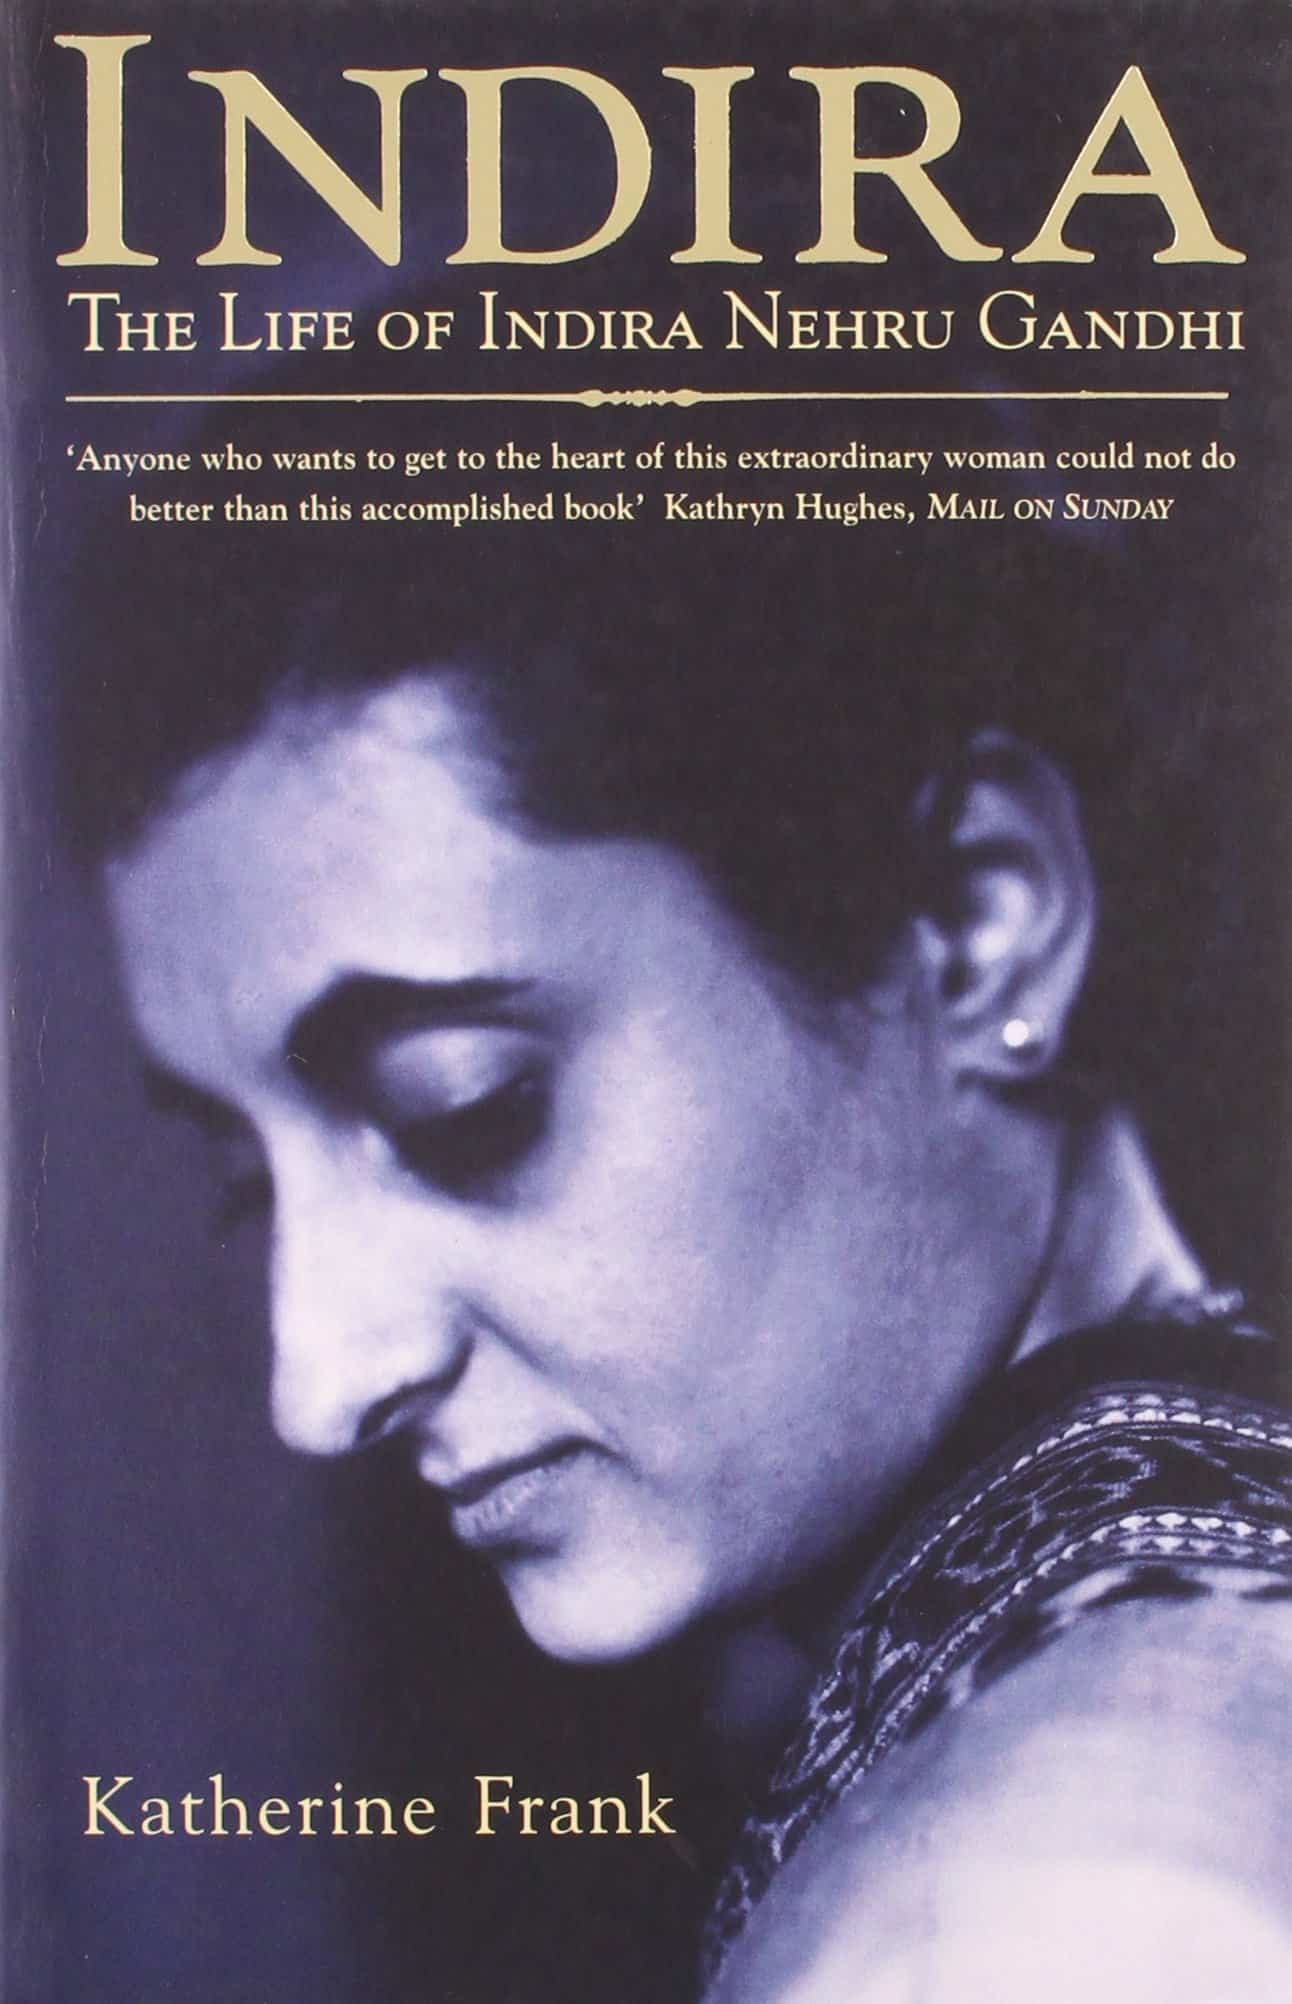 Indira: The Life of Indira Nehru Gandhi – biography